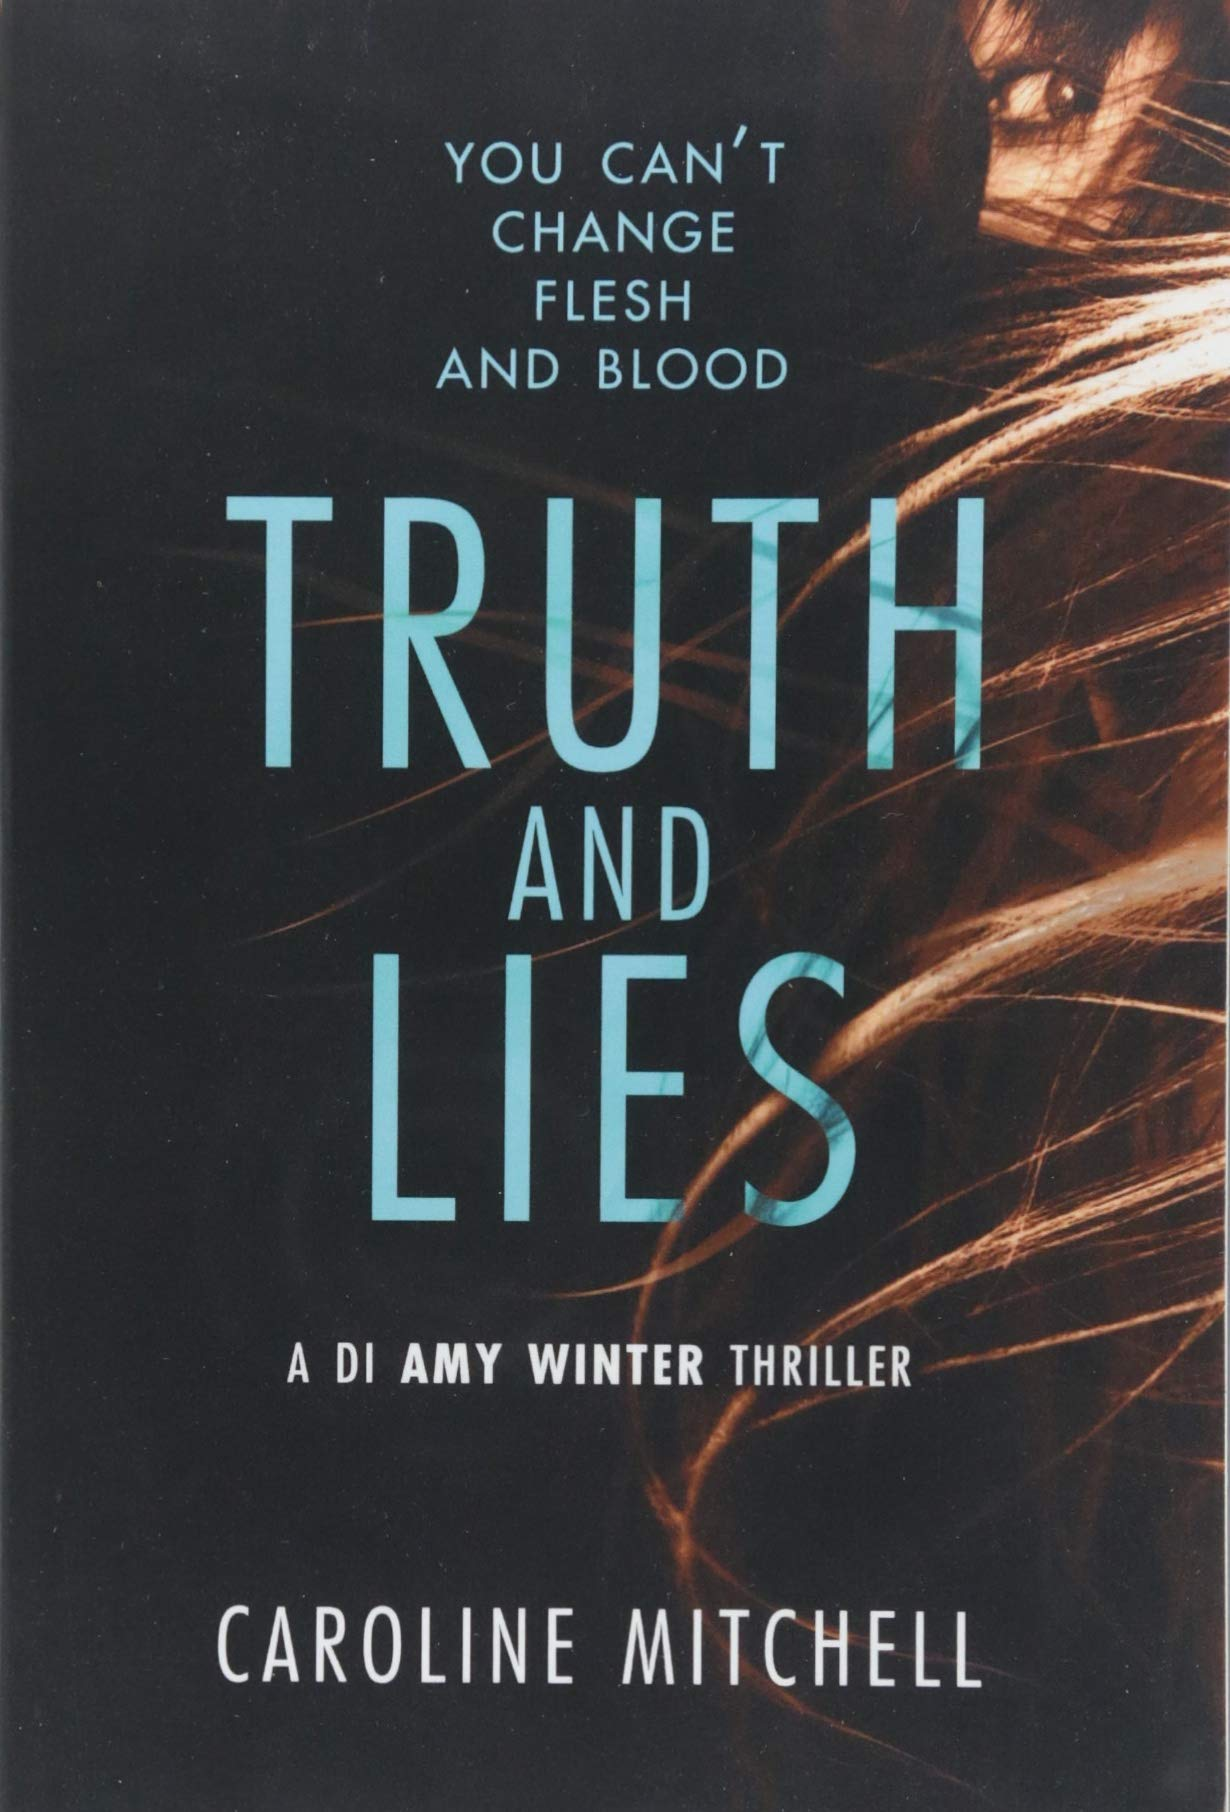 Amazon.com: Truth and Lies (A DI Amy Winter Thriller ...